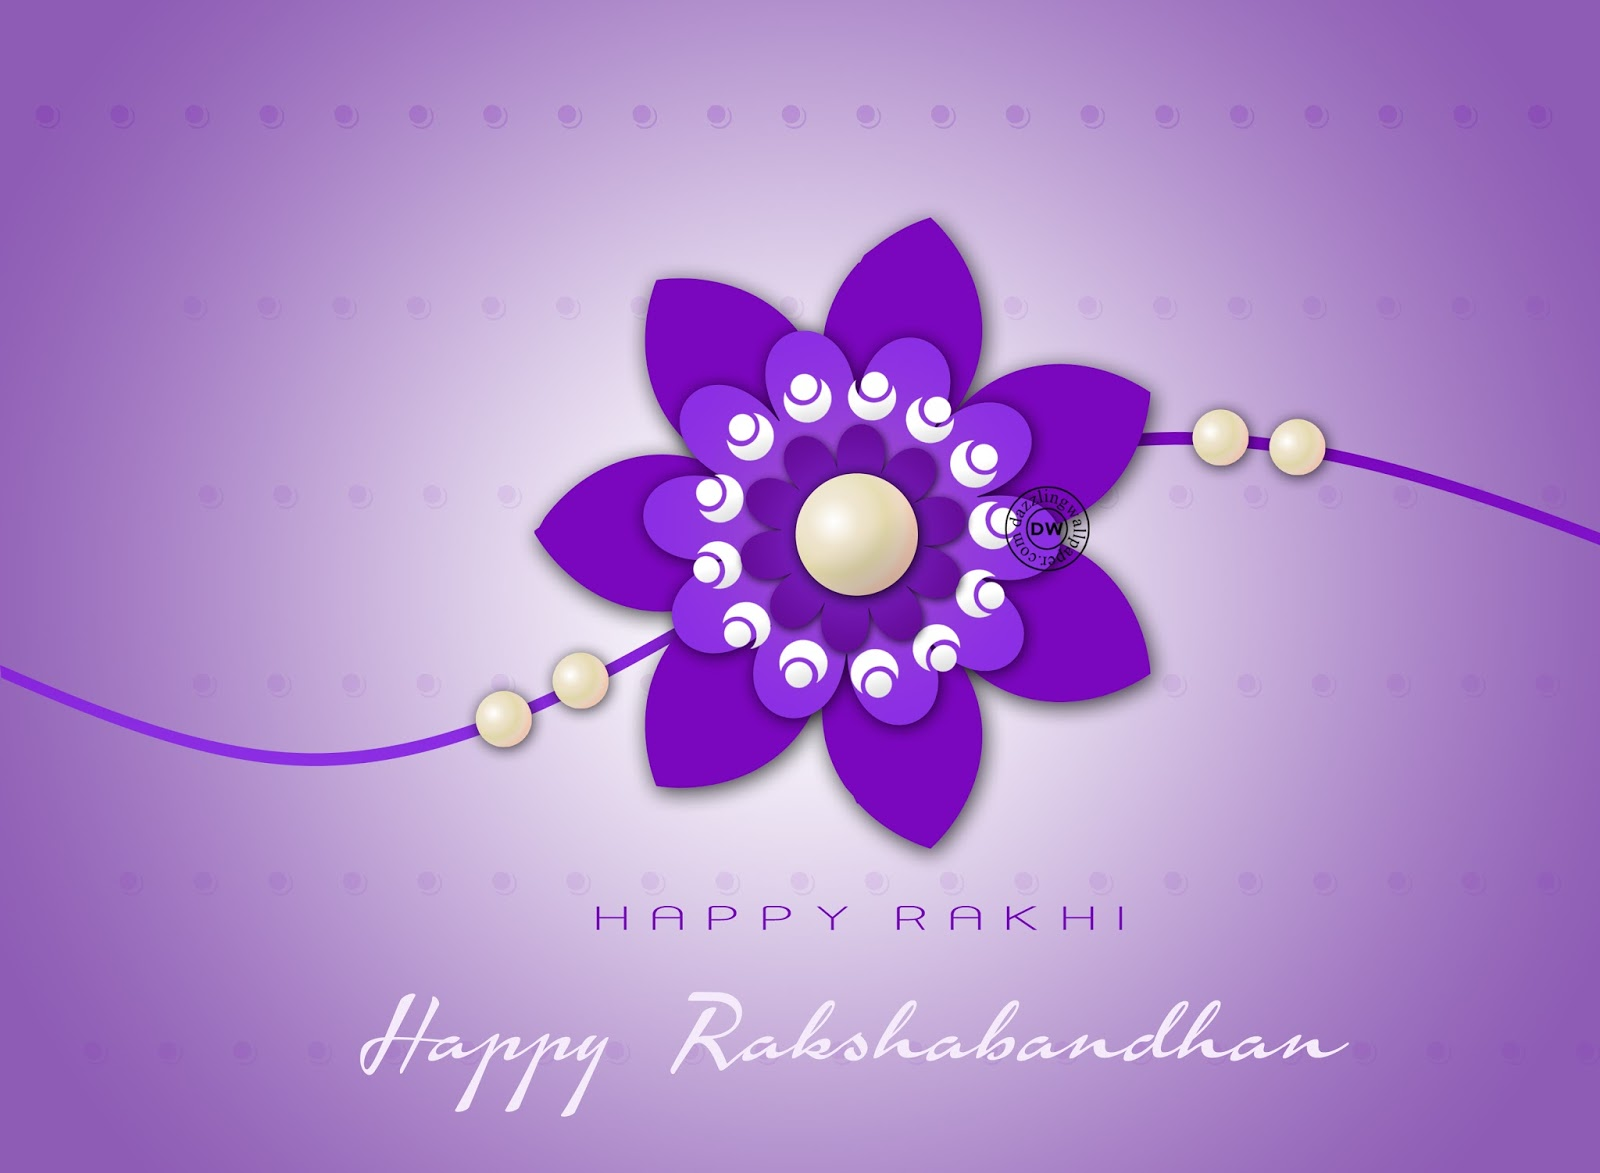 happy raksha bandhan rakhi wishes images quotes sms rakhi raksha bandhan hd for mobile and